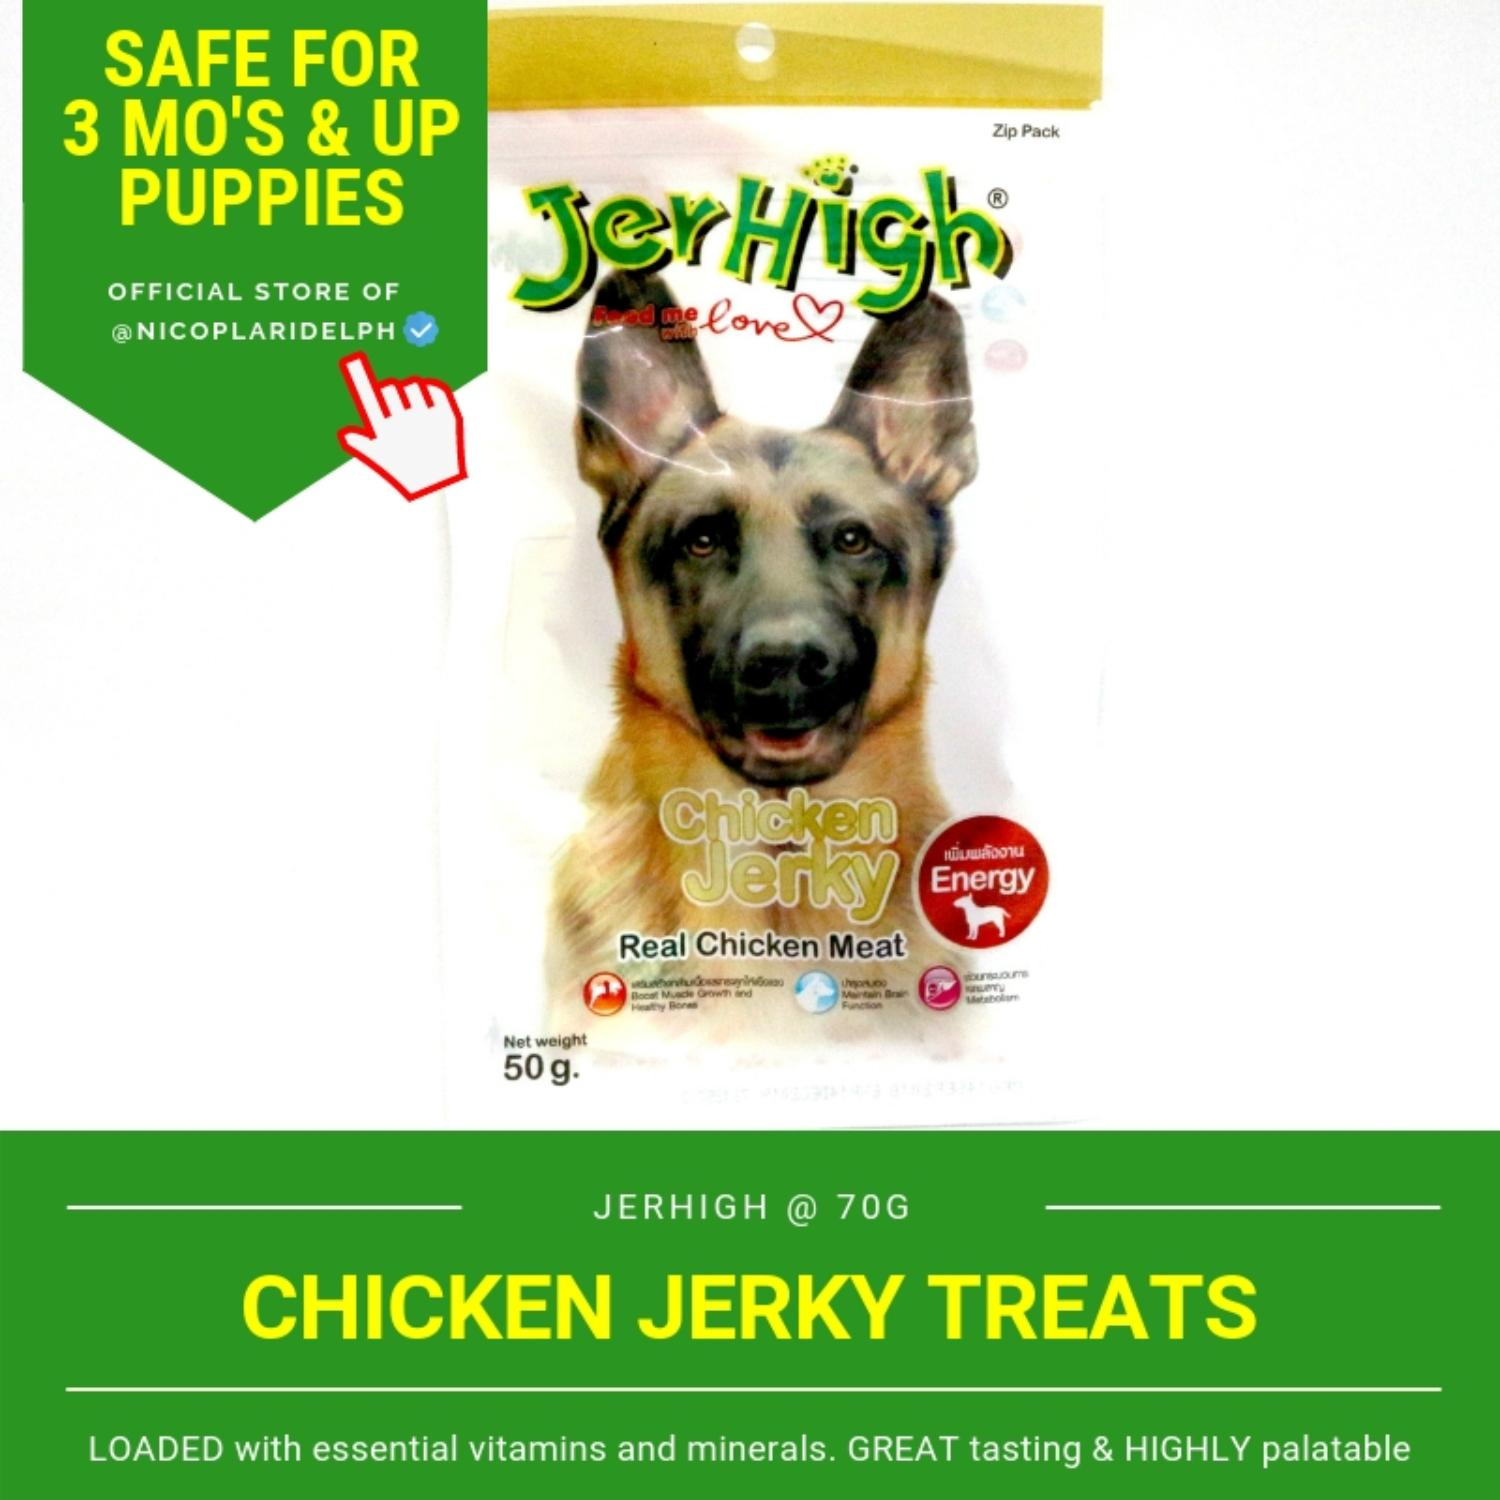 Jerhigh Chicken Jerky With Real Chicken Meat For Puppies And Adult Dogs (50g) By Nicoplaridelph.